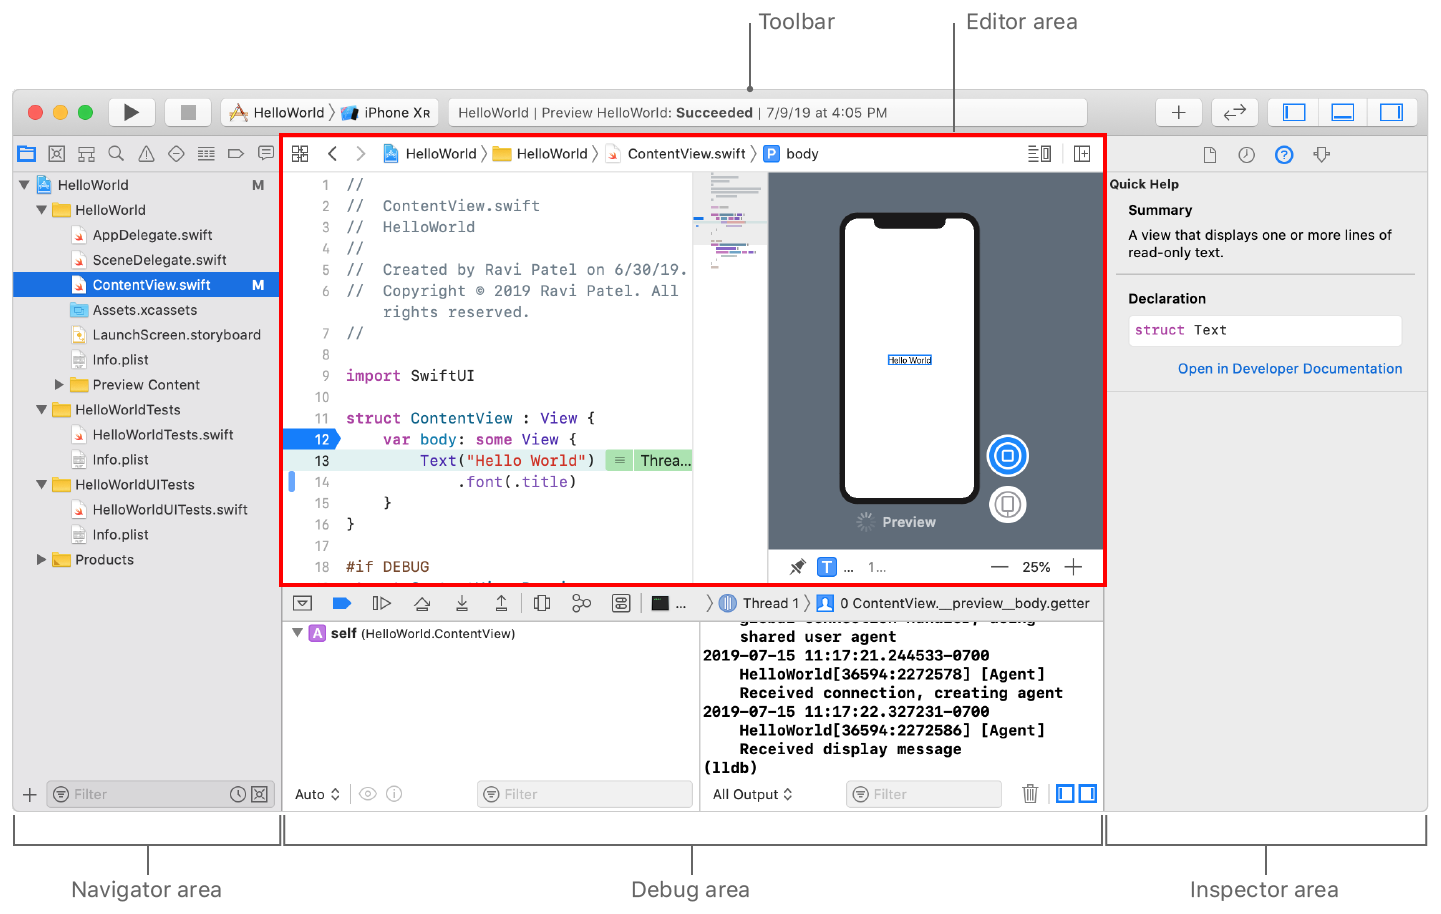 Screenshot showing the location of the main window areas: the toolbar at the top, navigator area on the left, editor area to the right, debug area below, and inspector area on the right.